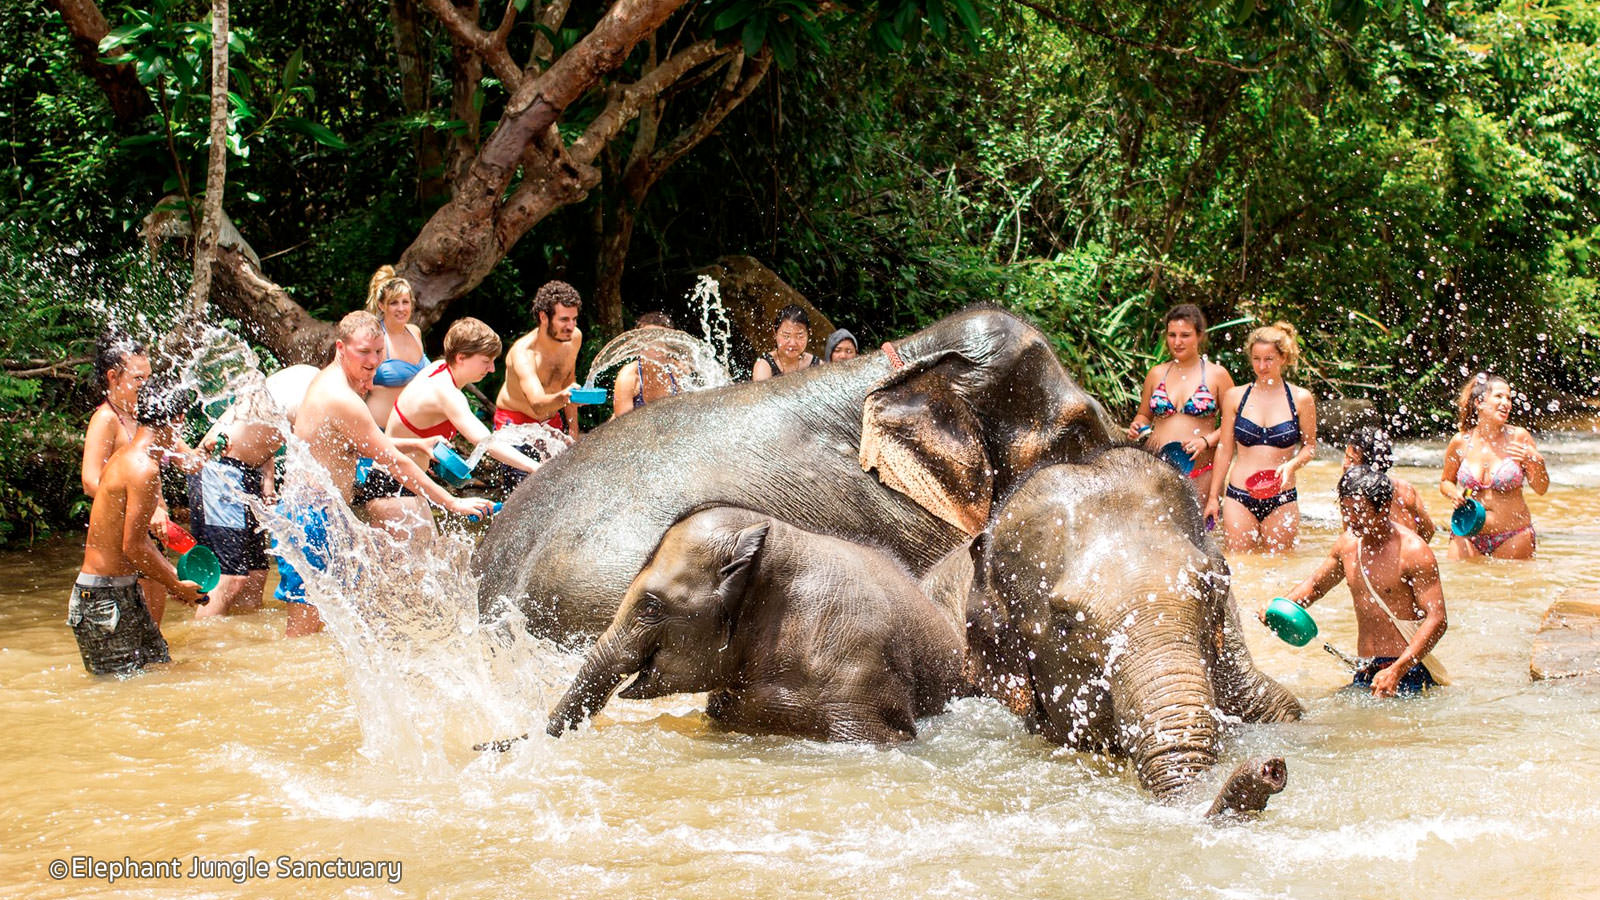 Tắm voi ở Elephant Jungle Sanctuary. Ảnh: asiawebdirect